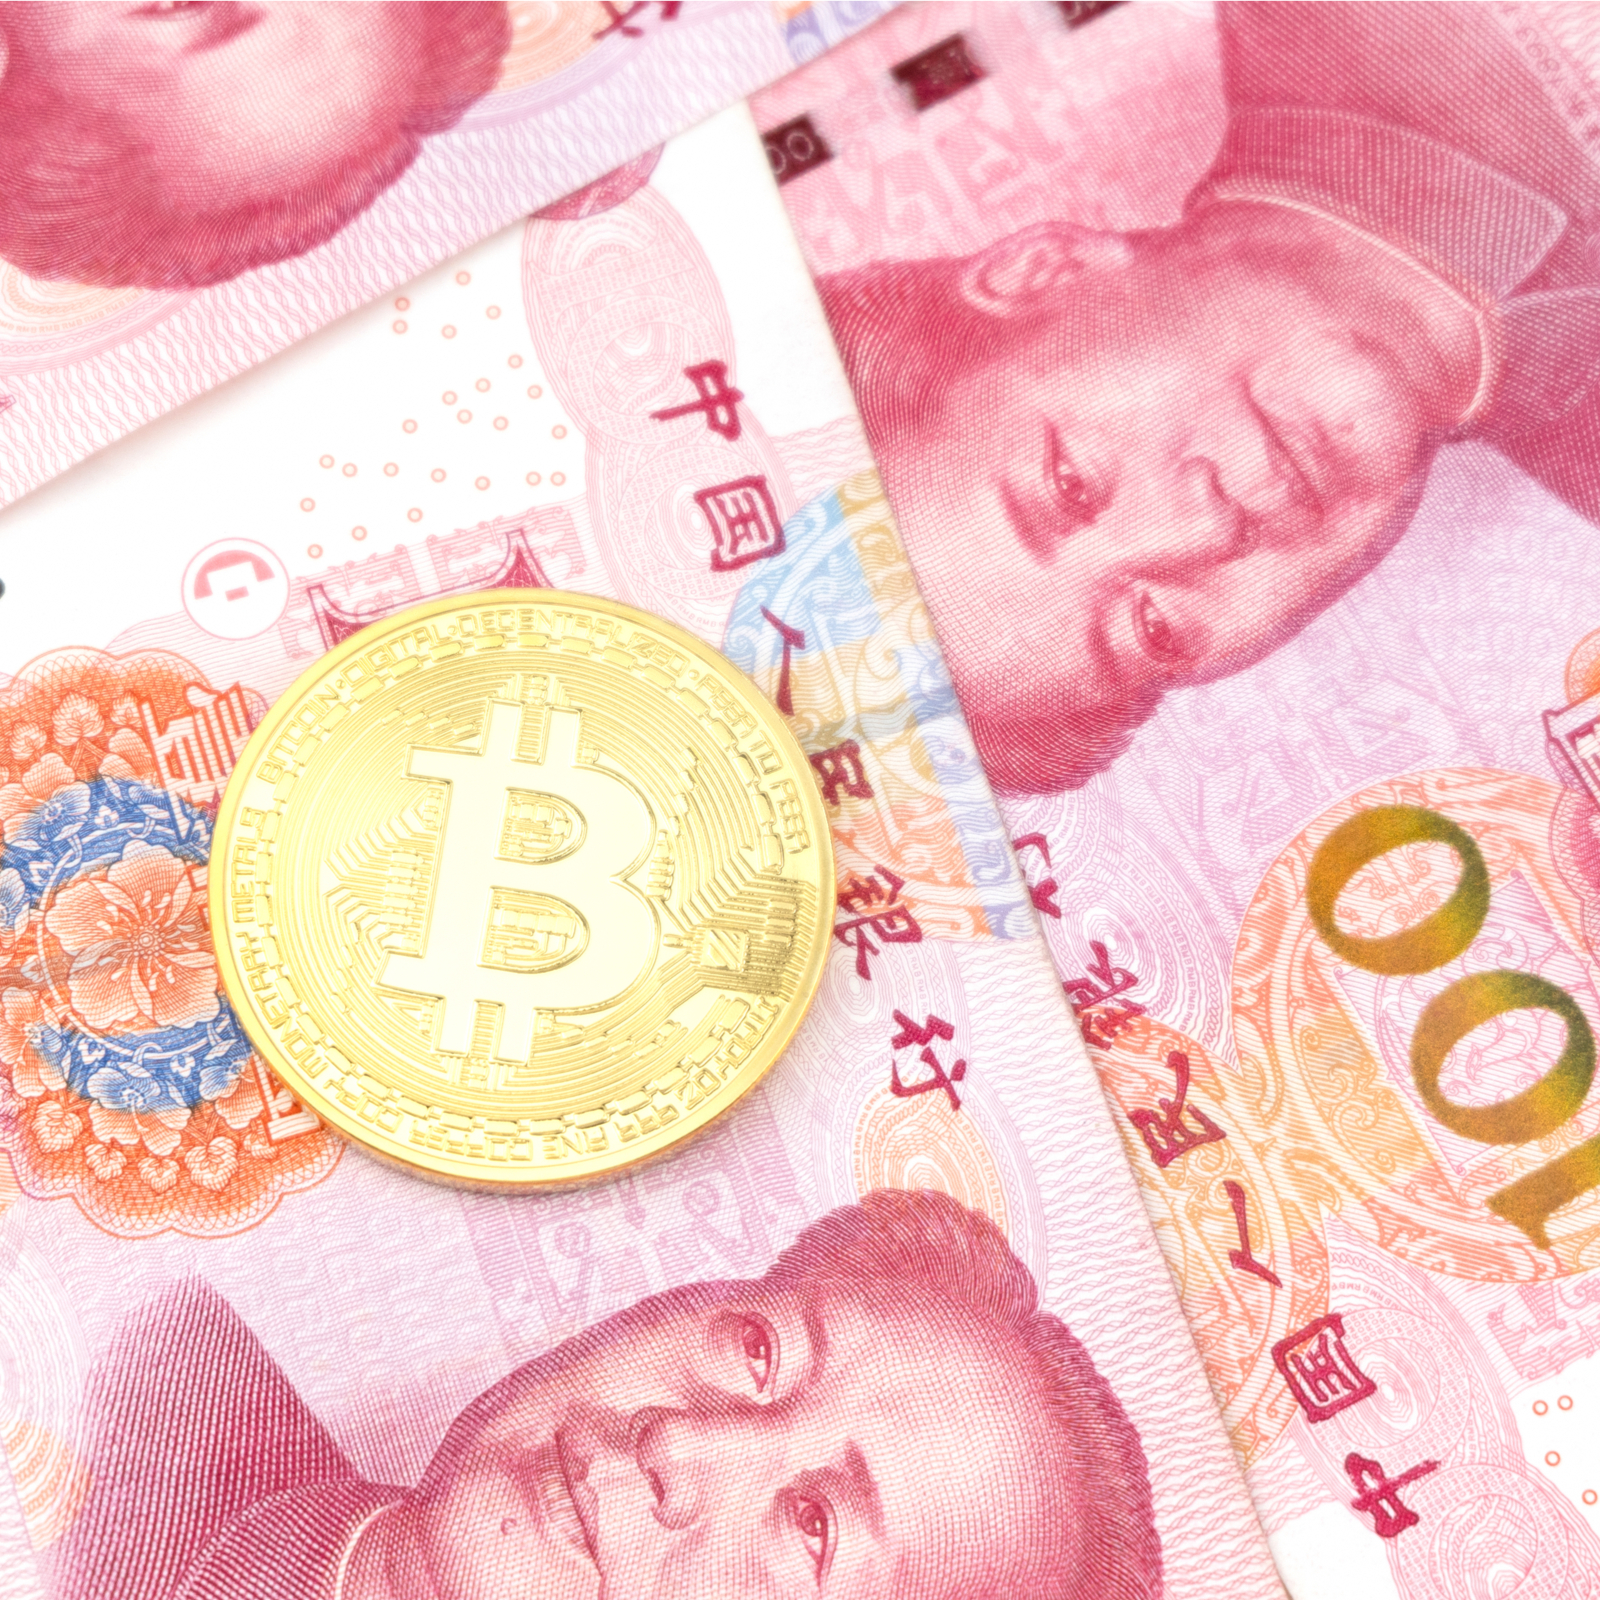 Bitcoin in Brief Wednesday: China Fights Impersonators and Fraudsters